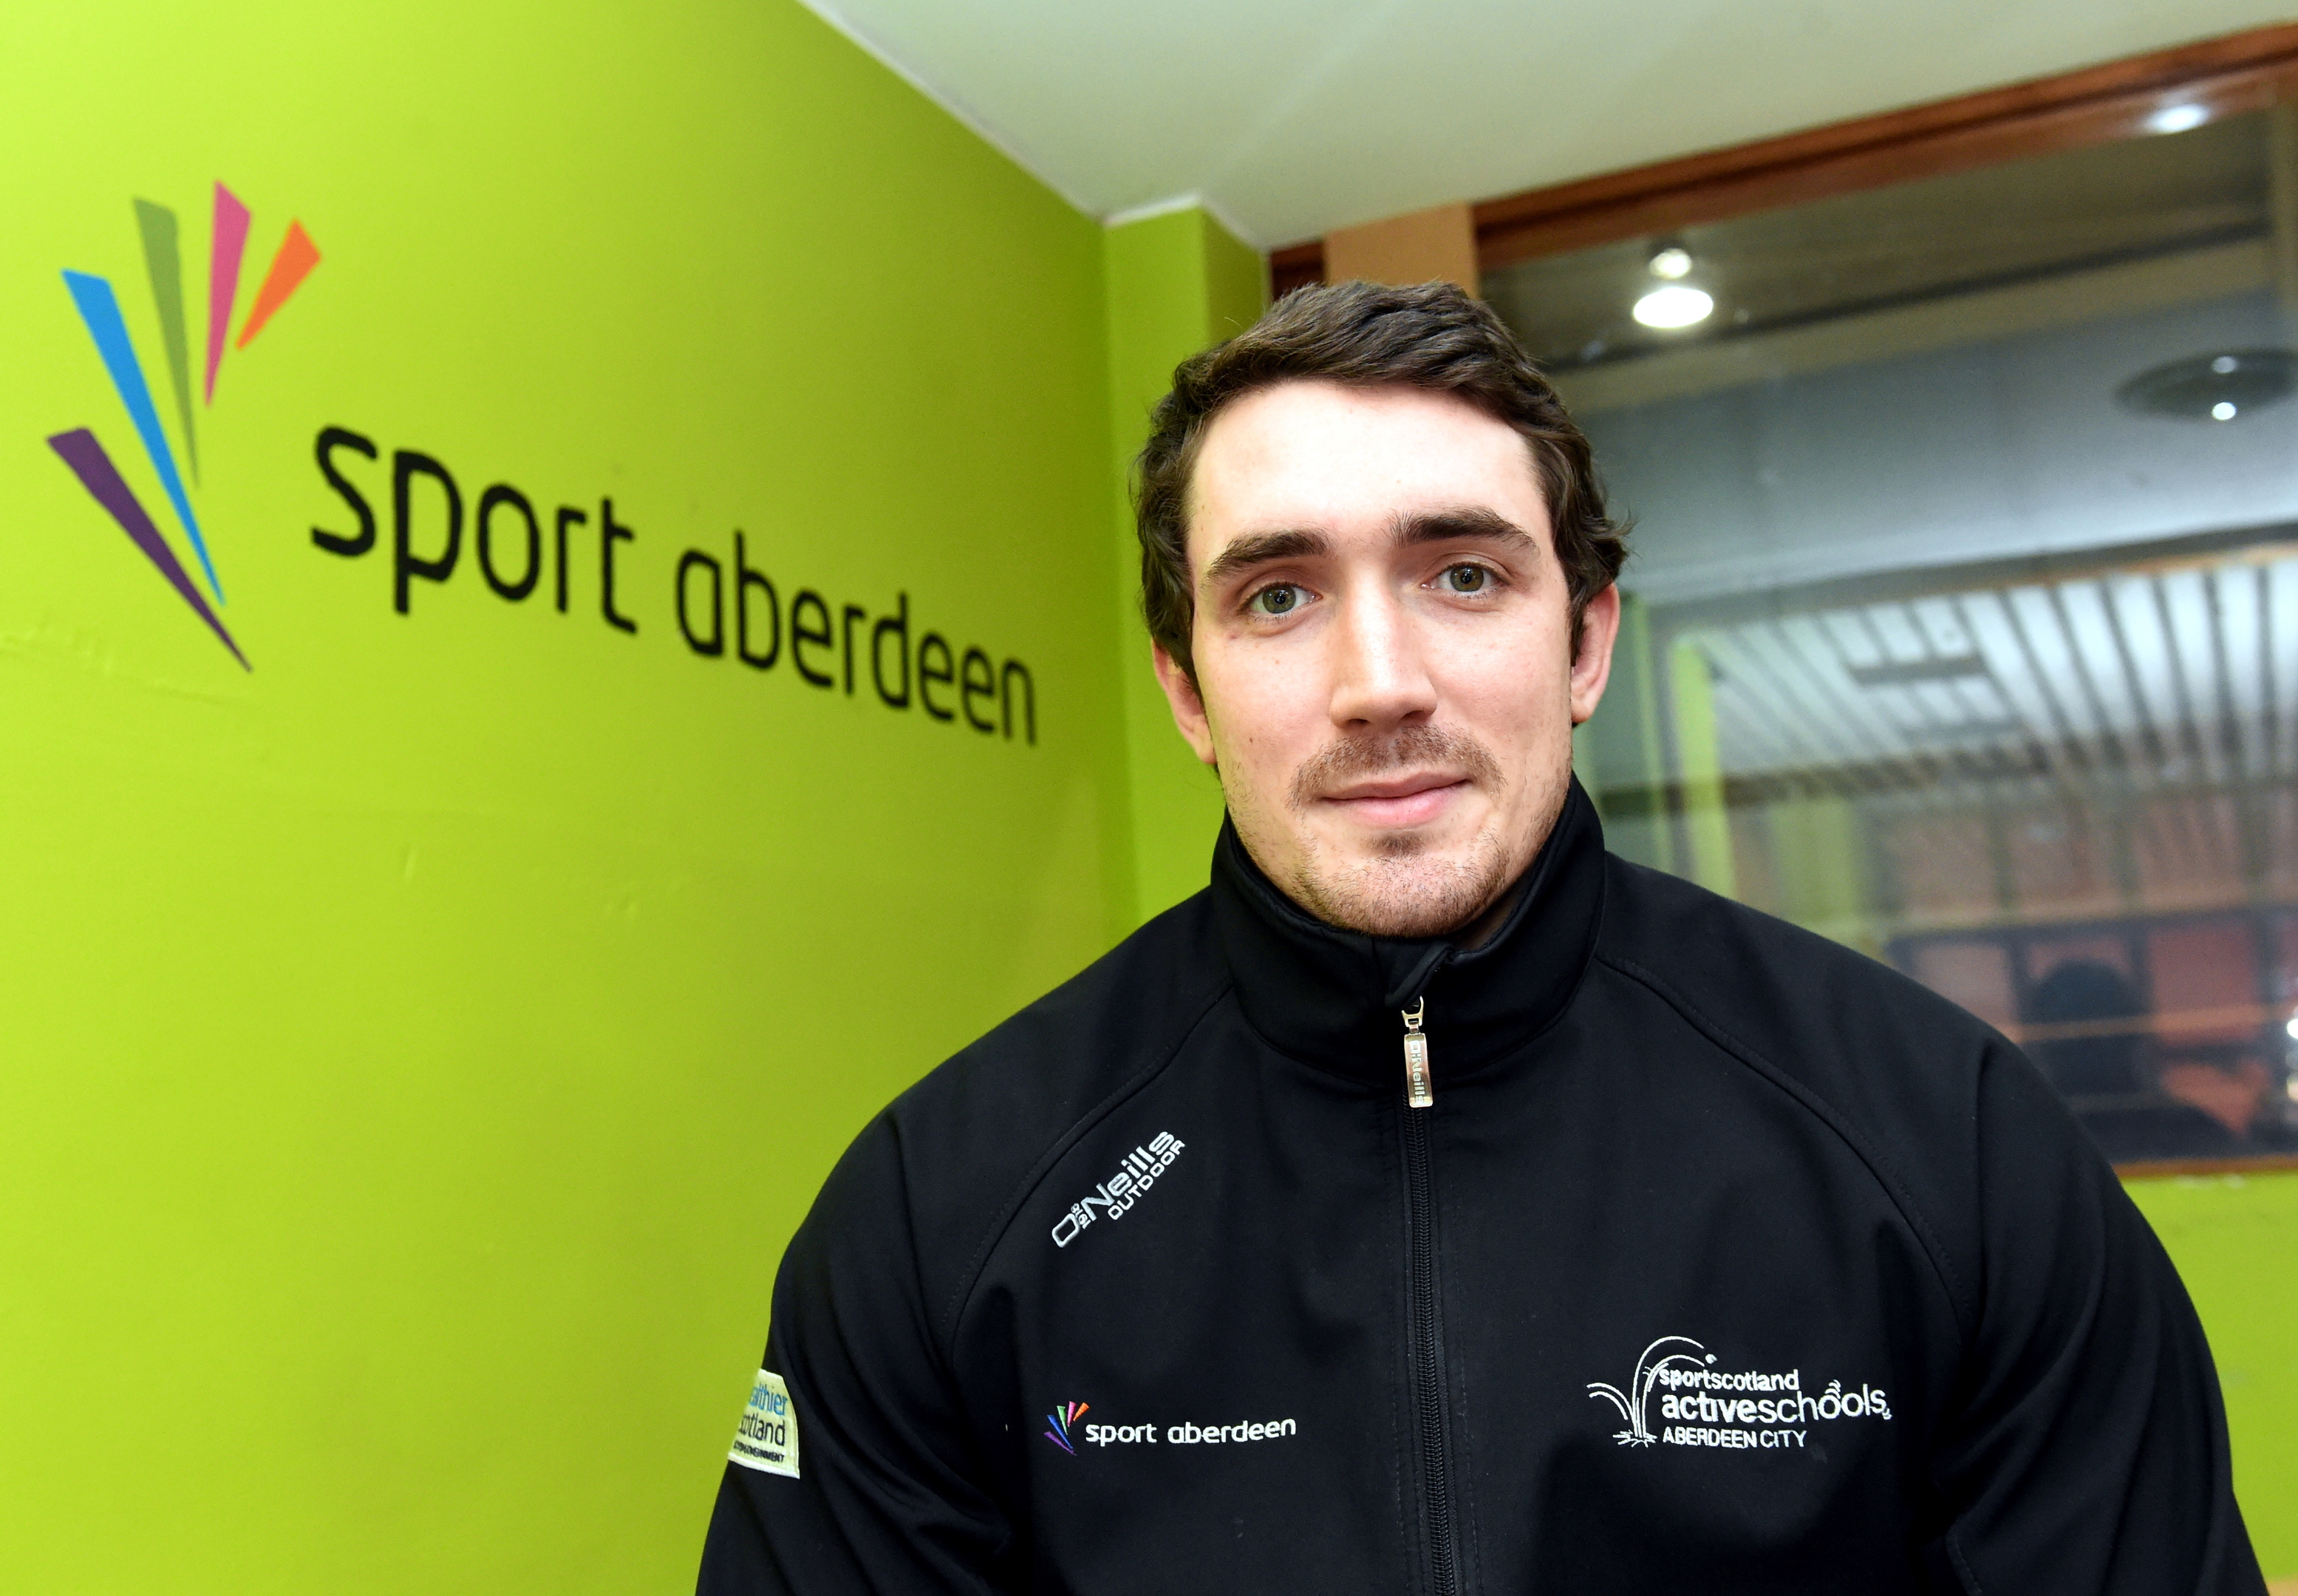 Andy Paxton of Sport Aberdeen's Active Schools Team at Kincorth Sports Centre